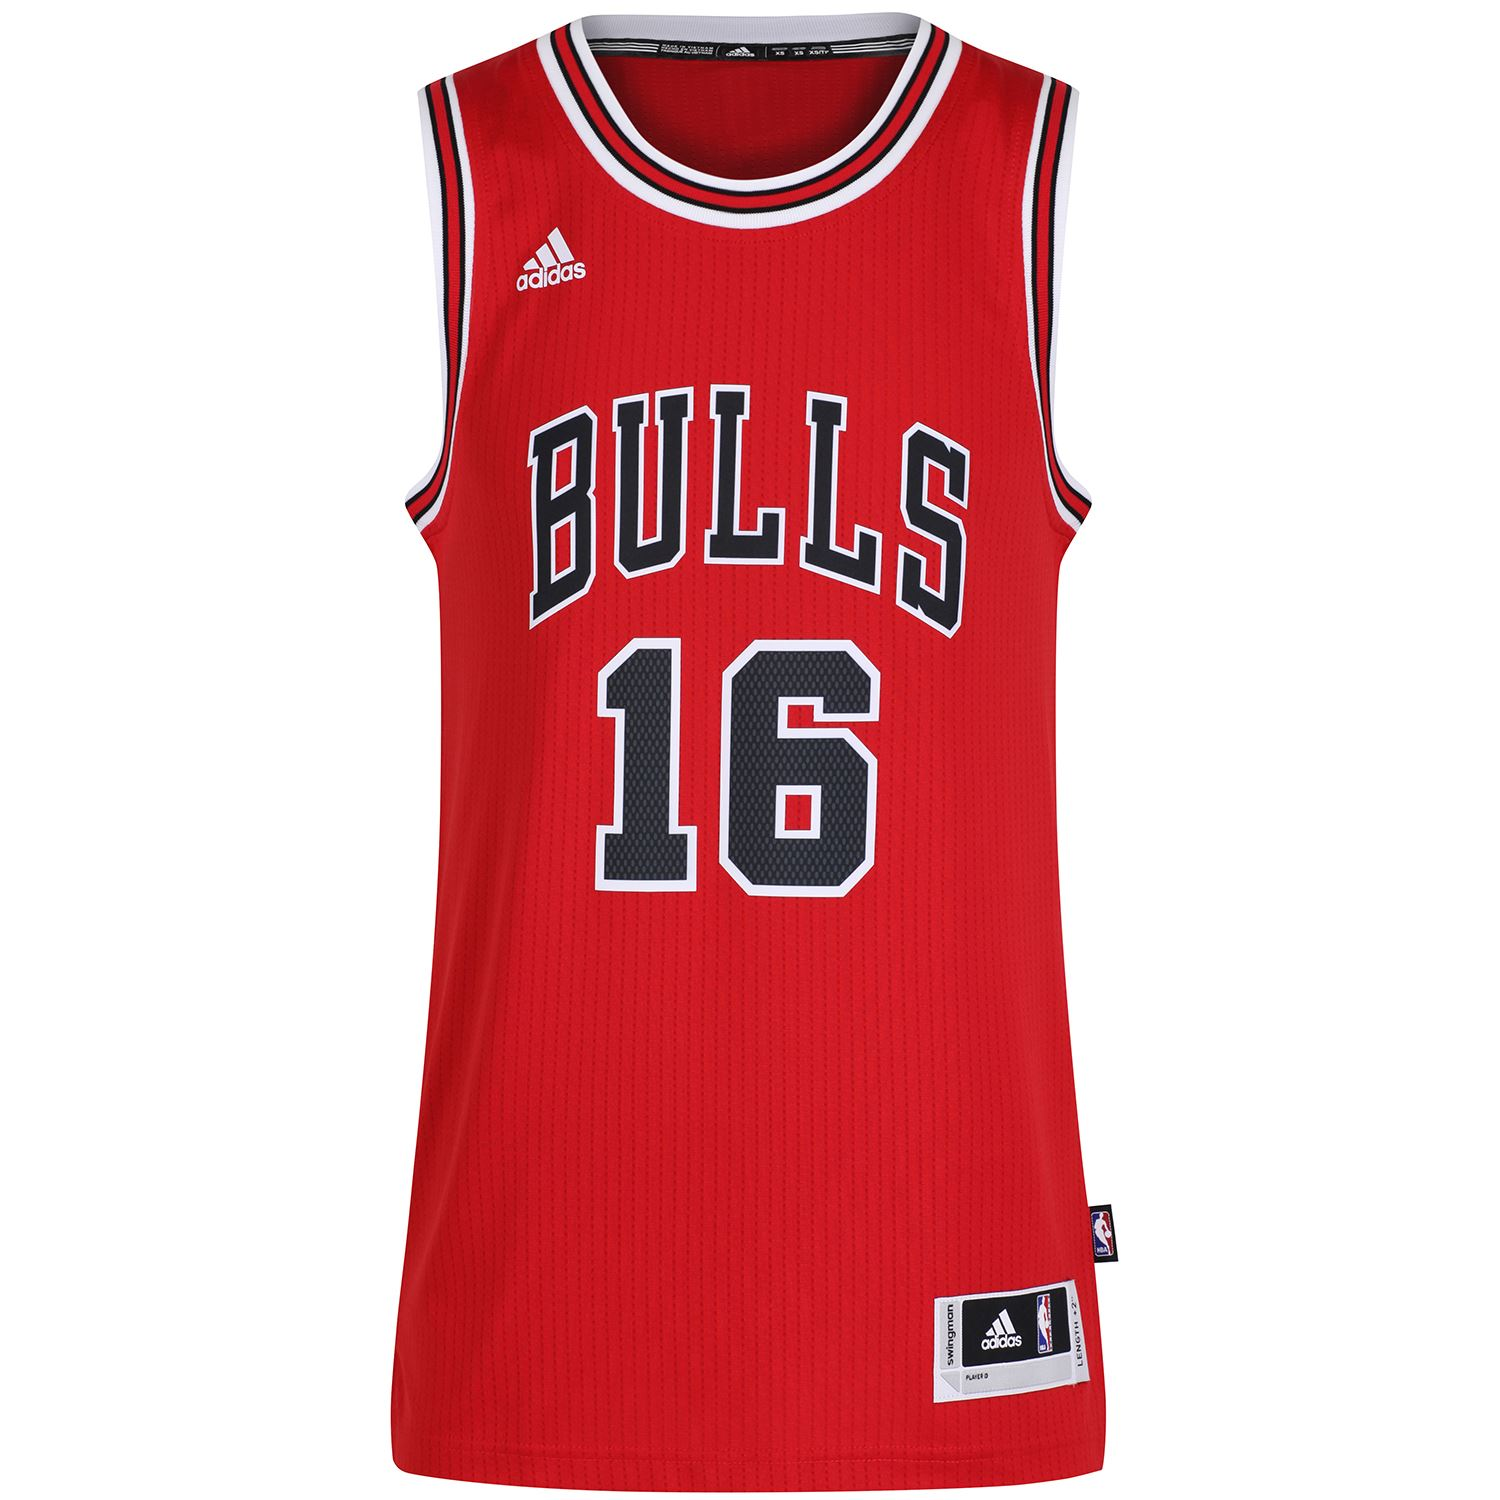 check out affd2 73ef1 Details about adidas PAU GASOL JERSEY SWINGMAN +2 LENGTH CHICAGO BULLS  BASKETBALL NBA CREW